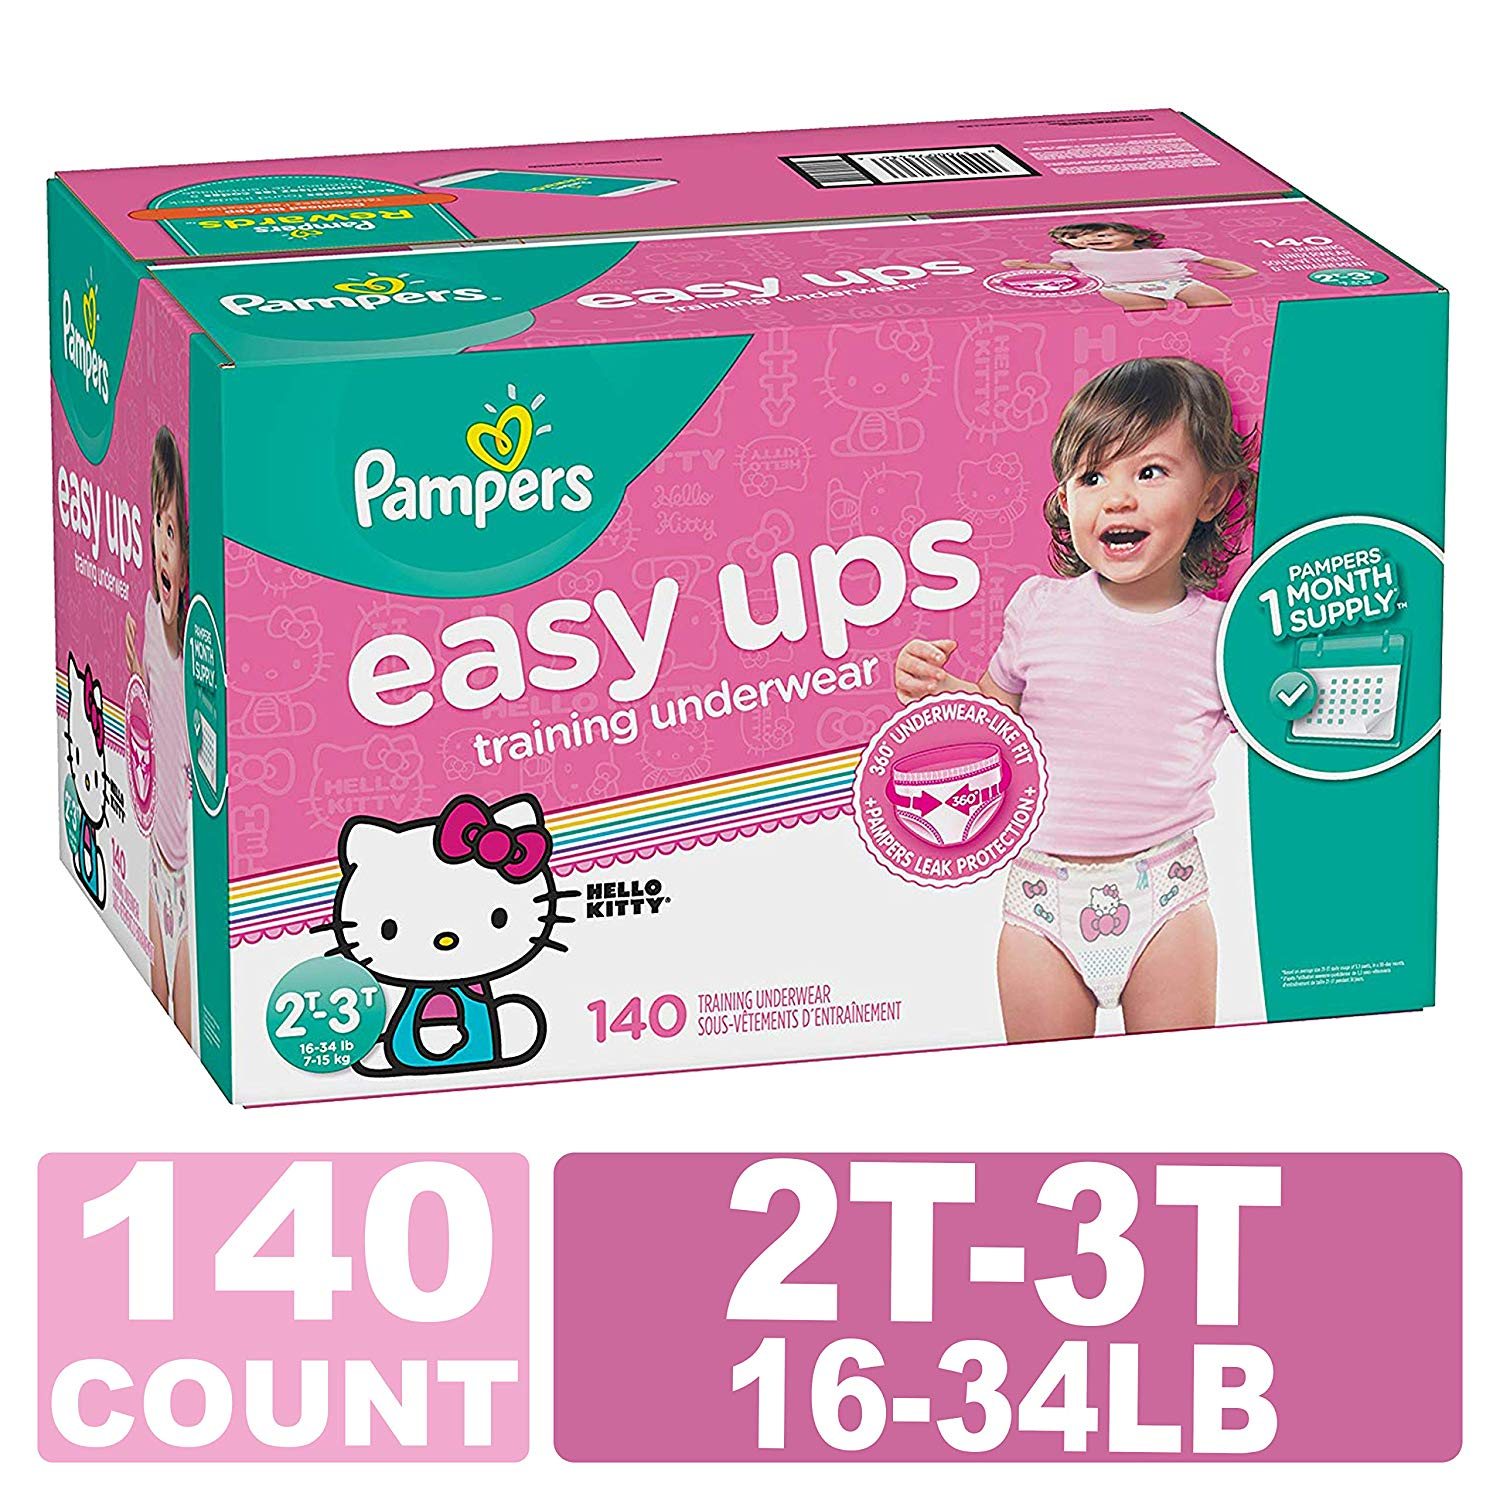 Pampers Easy Ups Training Pants Pull On Disposable Diapers for Girls, Size 4 (2T-3T), 140 Count, ONE Month Supply at $31.55!